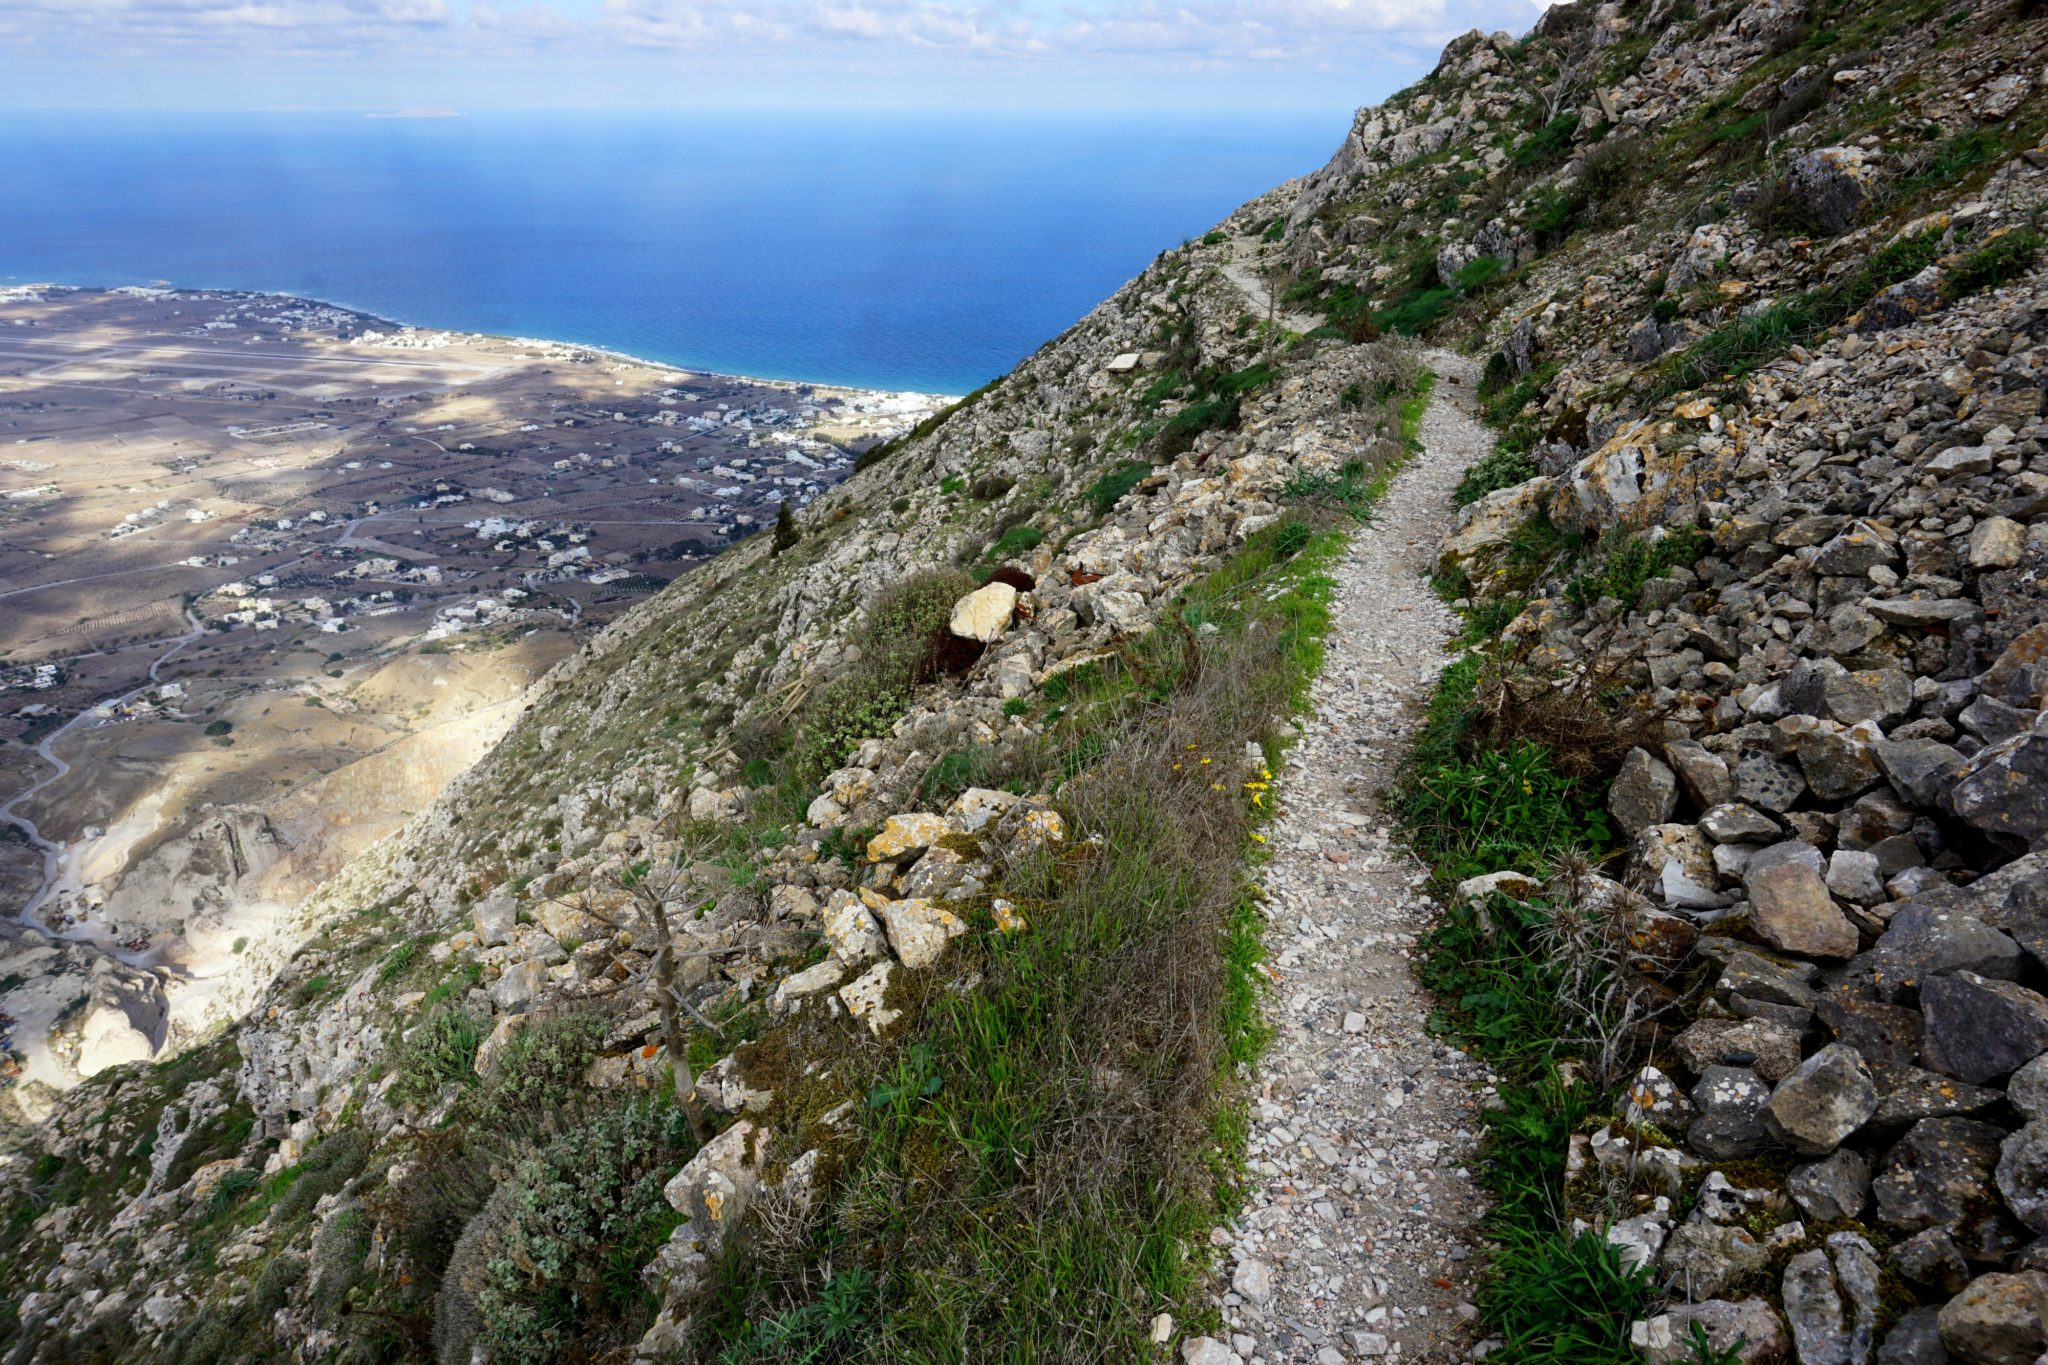 The hiking trail from Mt. Profitis Ilias down to Ancient Thera.